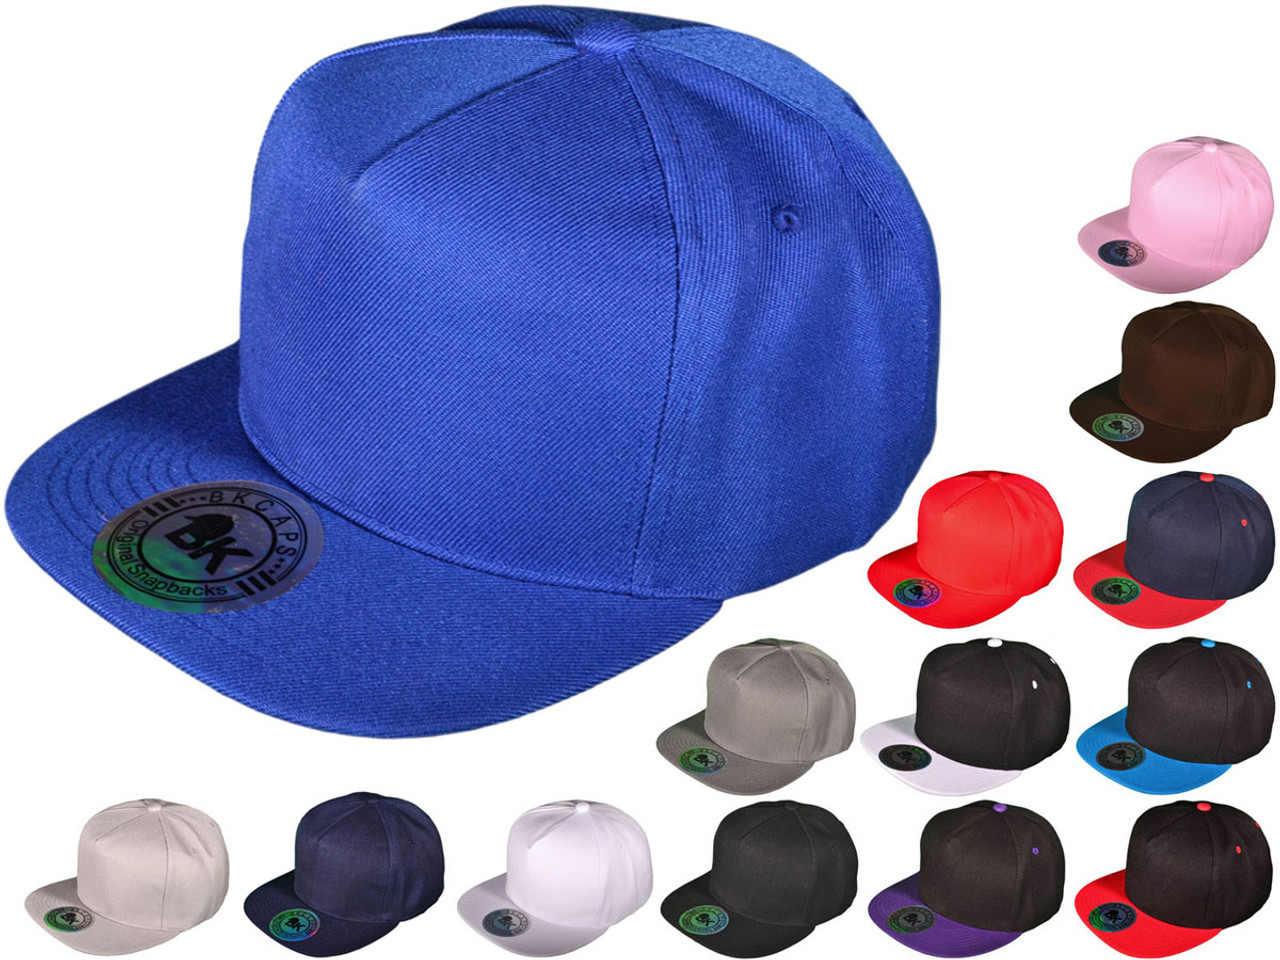 a5f0cebad82 Wholesale BK Caps Flat Bill 5 Panel Snapback Hats with Same Color Underbill  (Black)